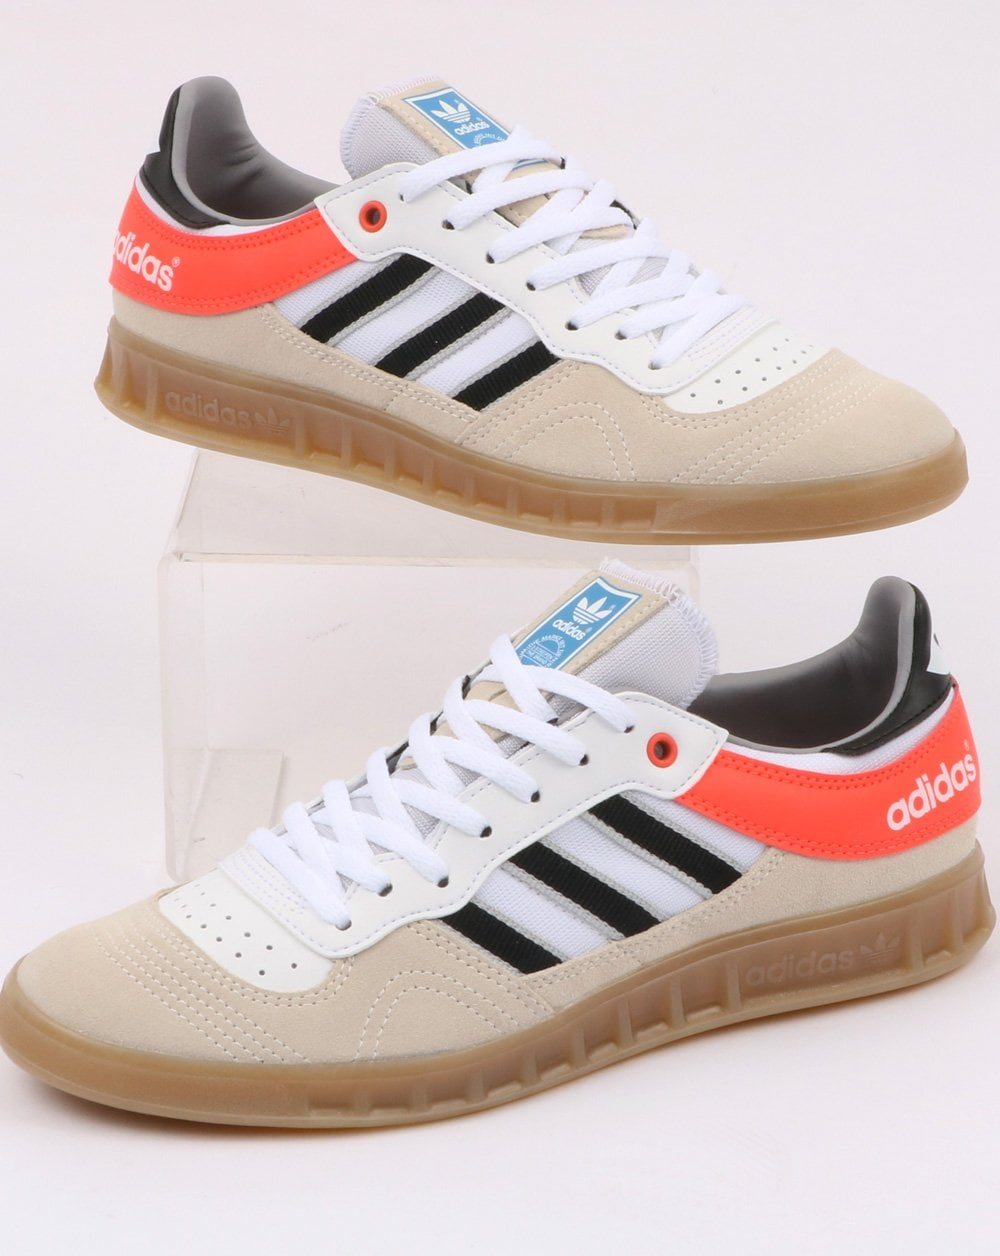 promo code 06a2c d99bf adidas Trainers Adidas Handball Top Trainers White Black Solar Red